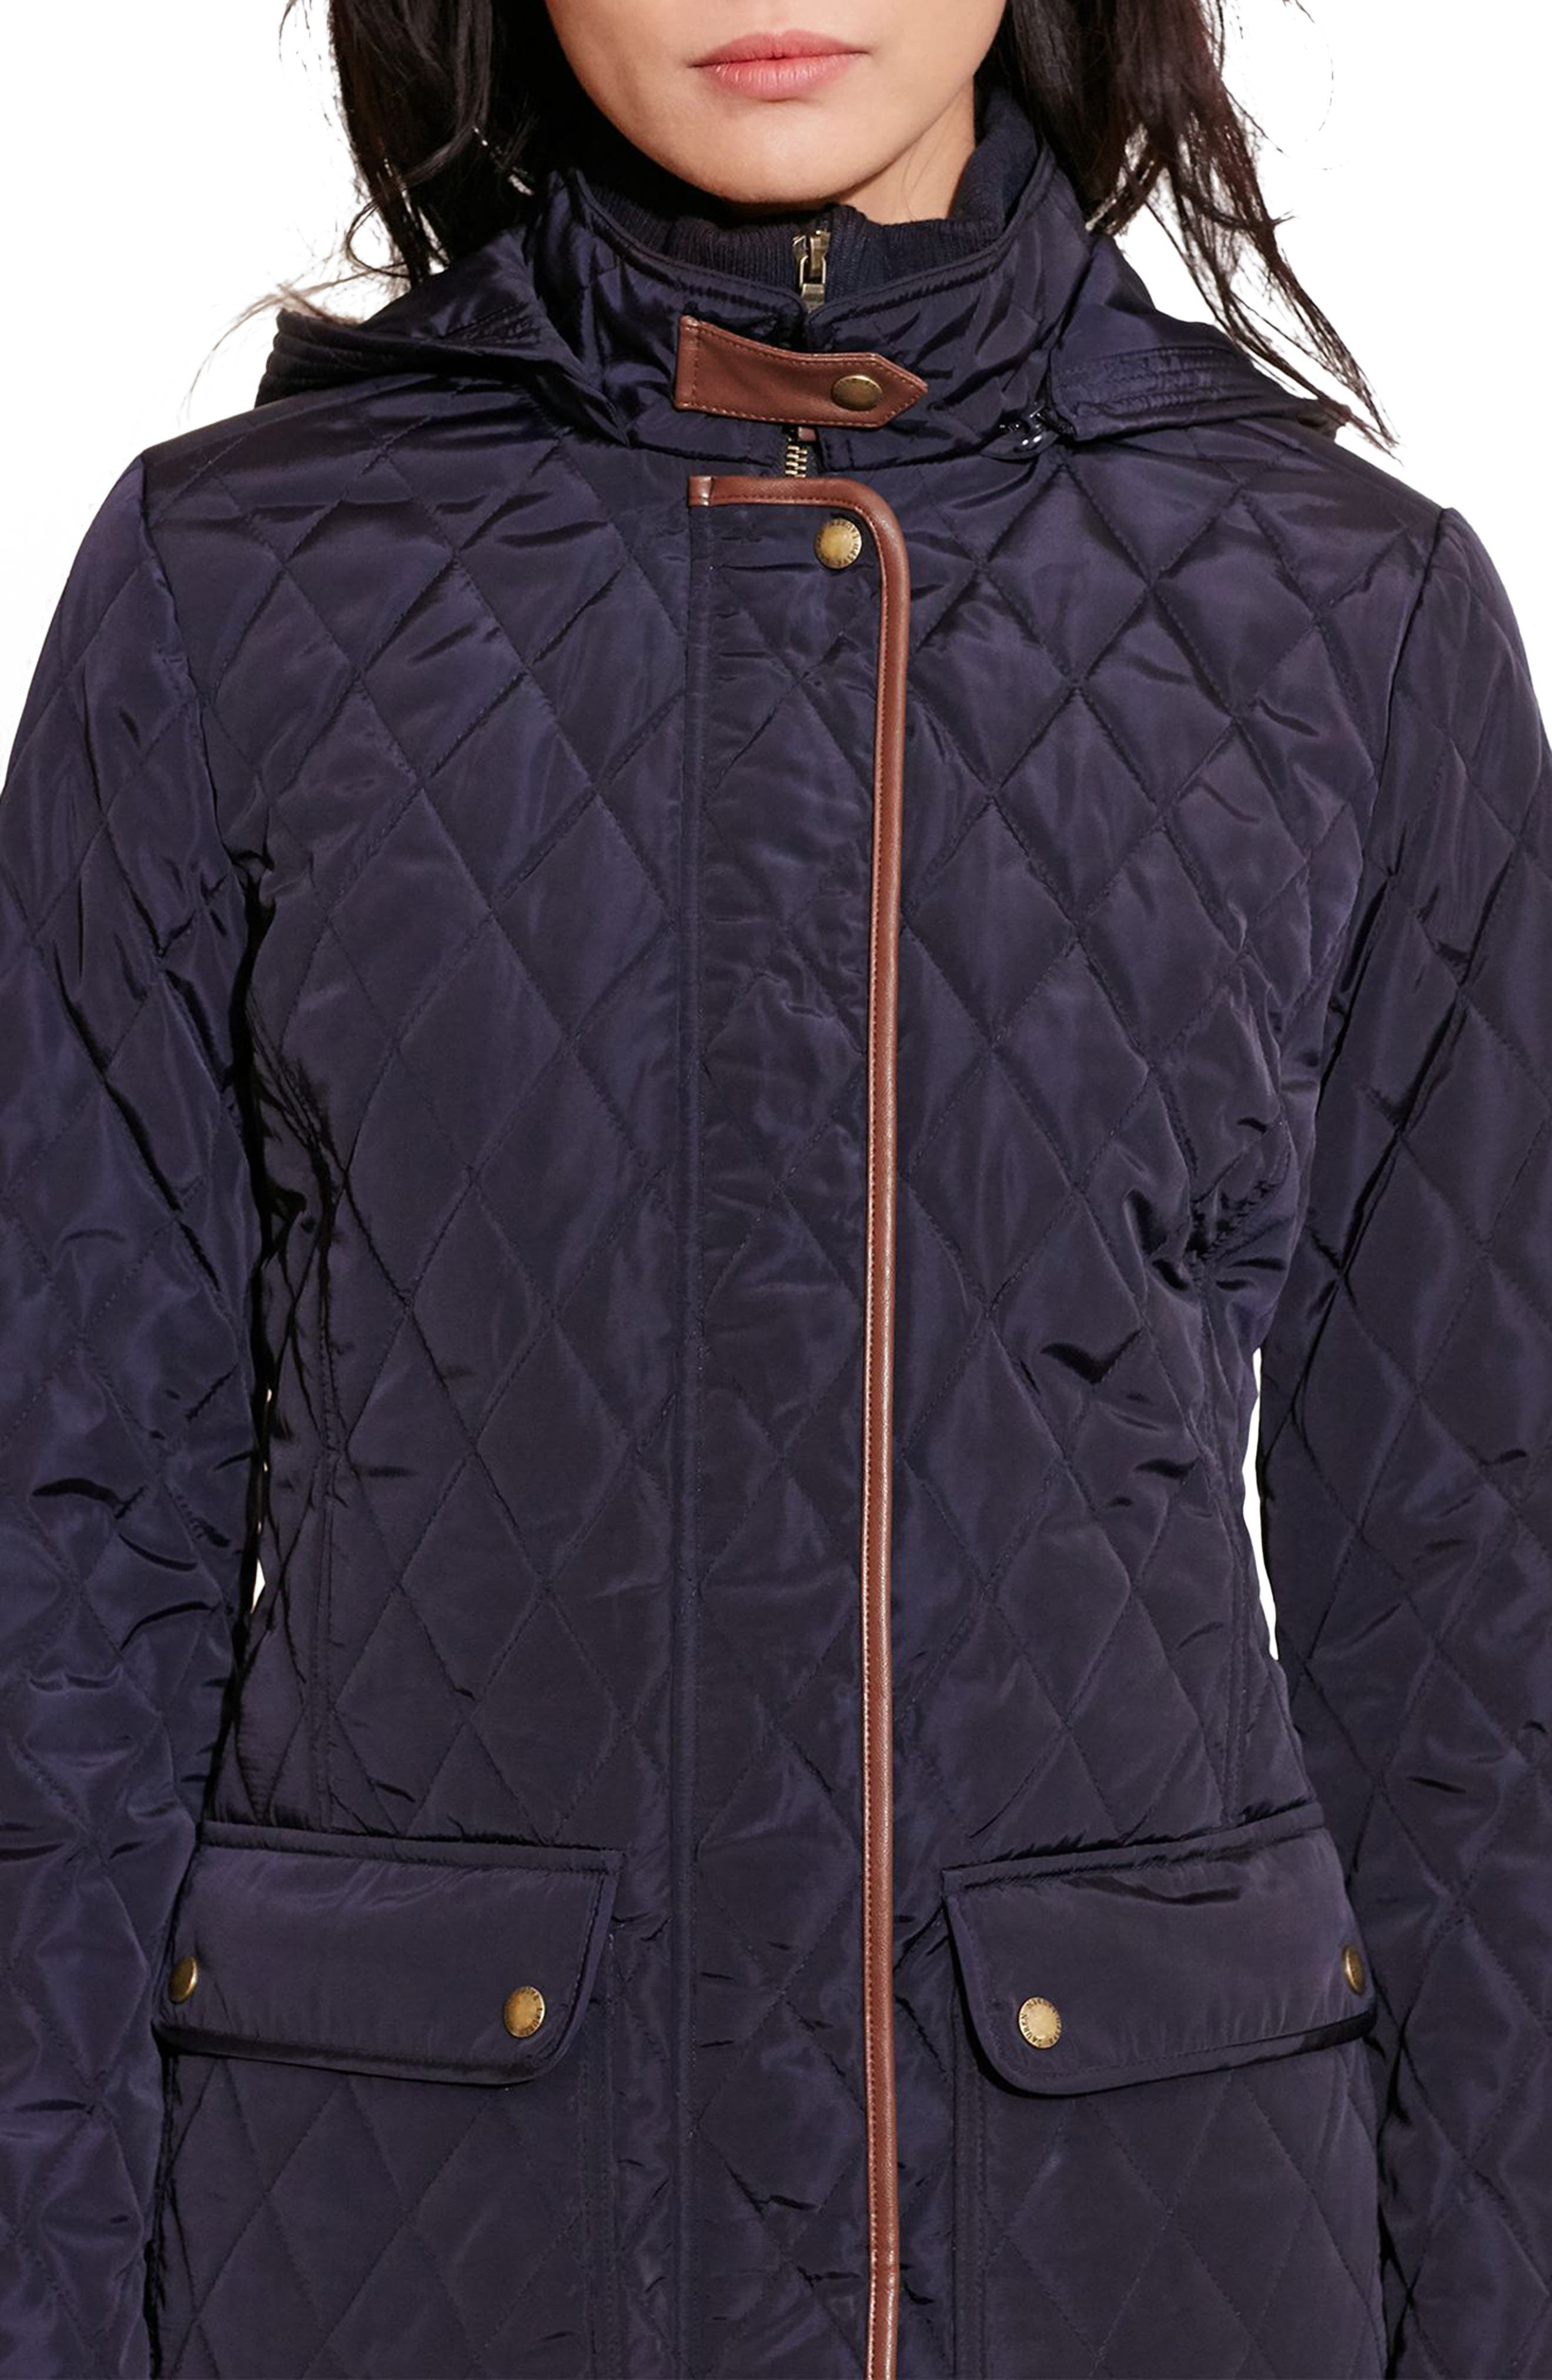 Diamond Quilted Coat with Faux Leather Trim,                             Alternate thumbnail 3, color,                             402